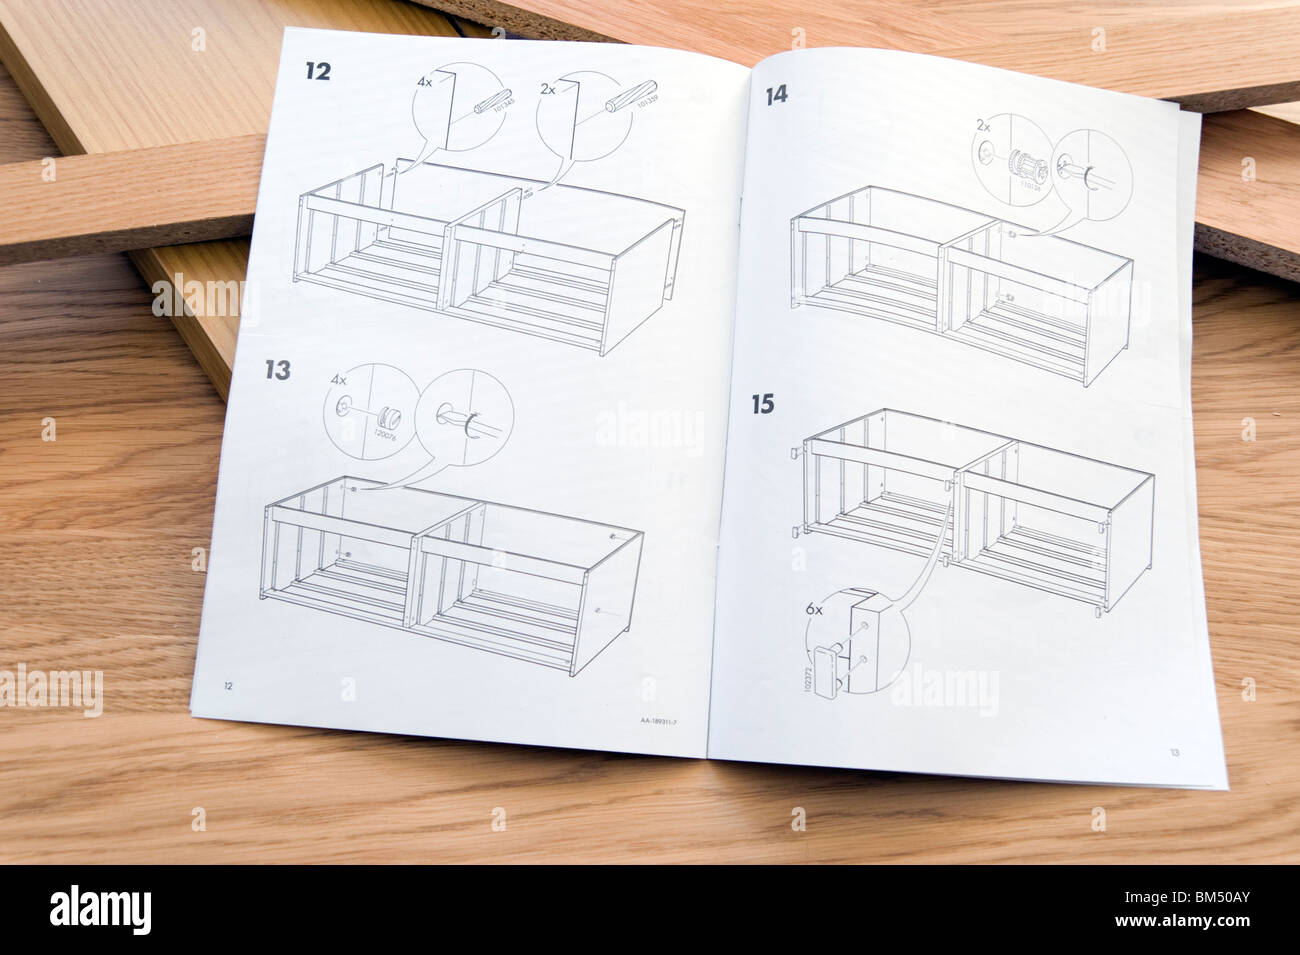 Self Assembly Instructions For Ikea Flat Pack Furniture   Stock Image